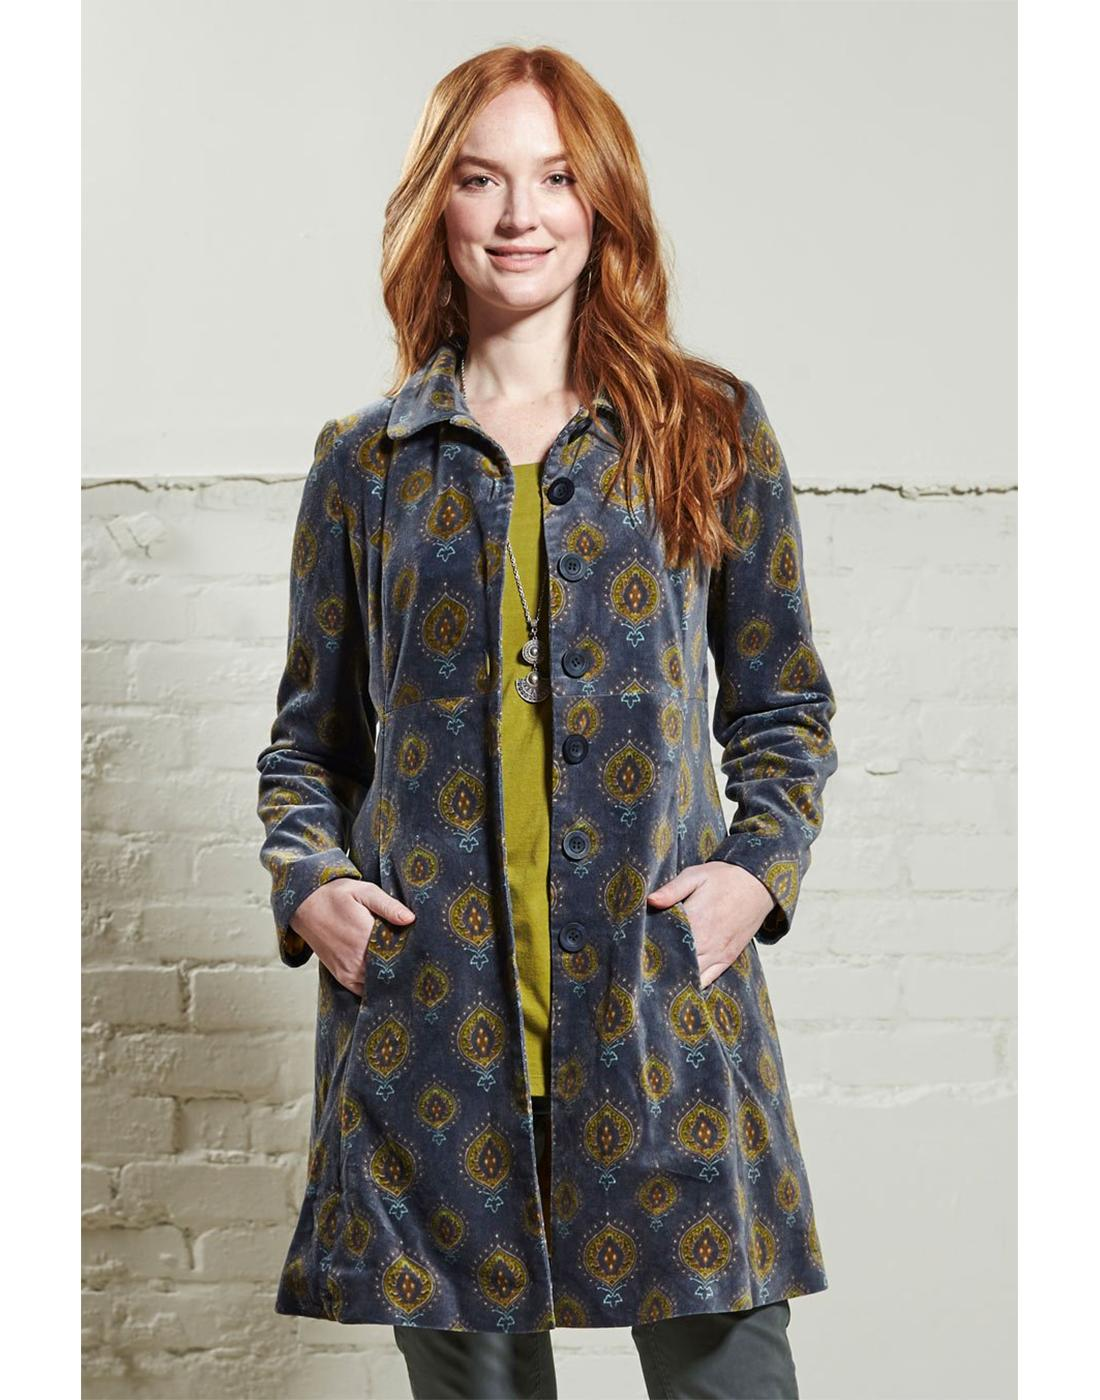 NOMADS Retro 70s Velvet Teardrop Coat in Pewter